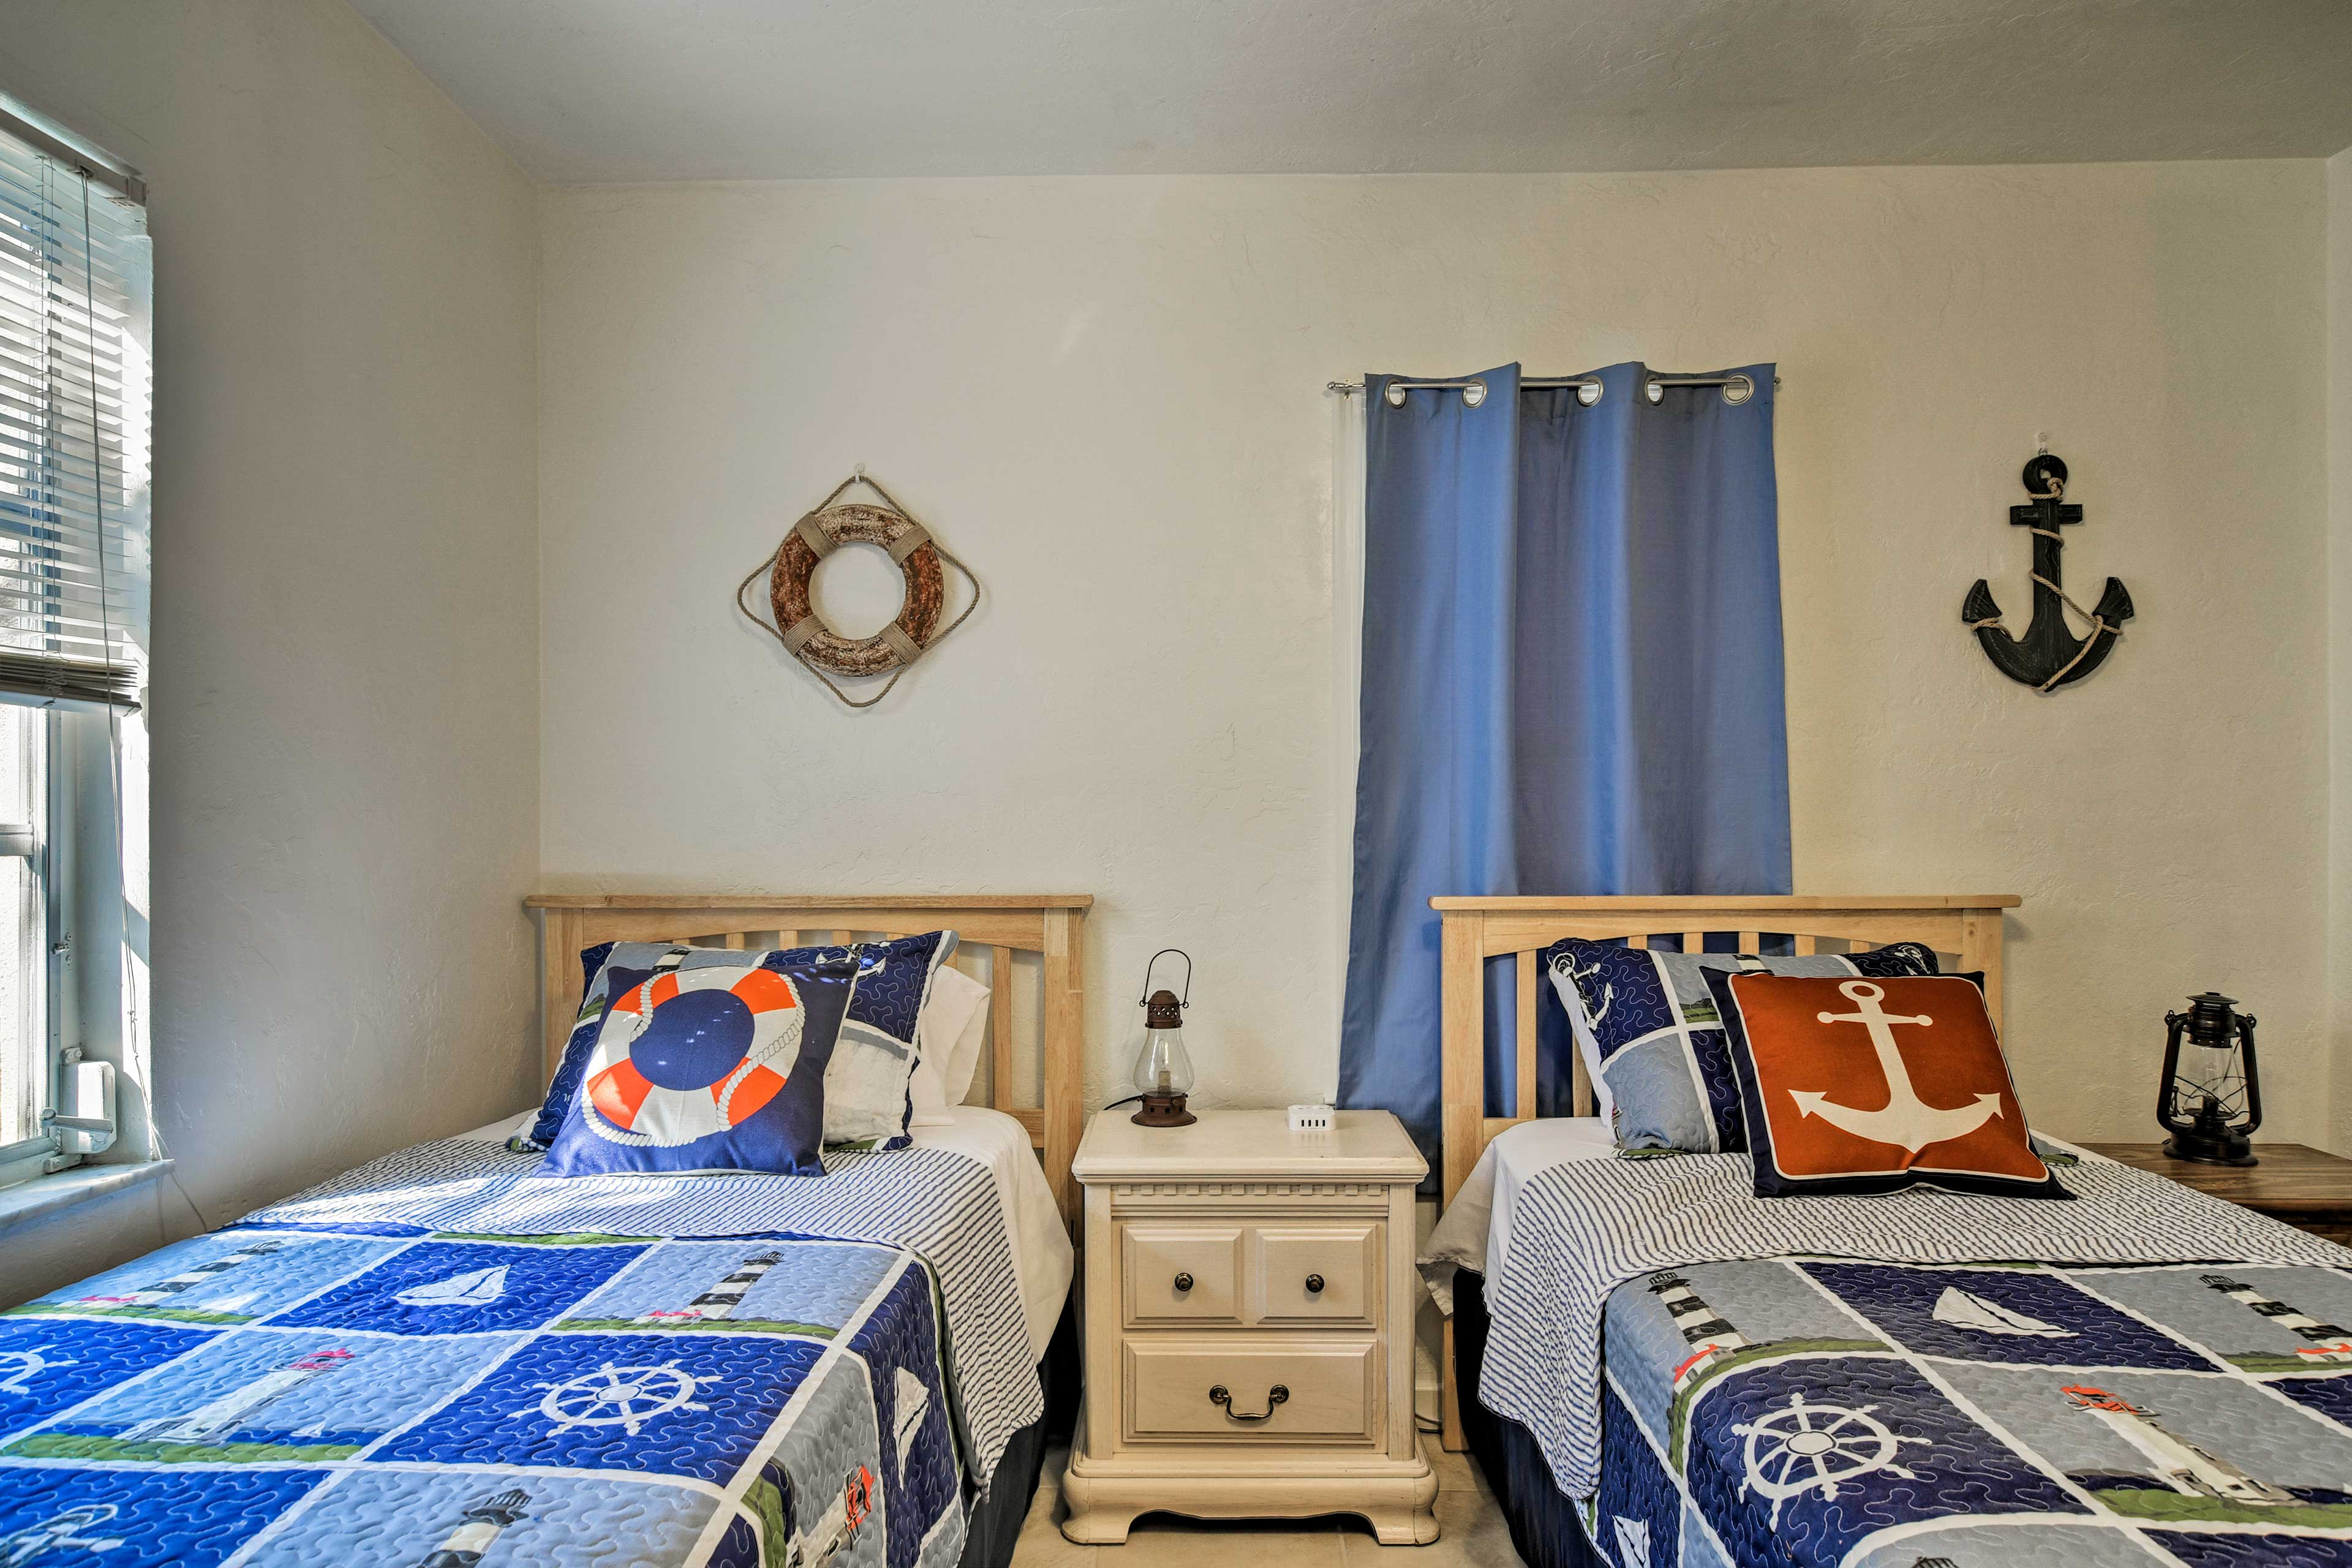 It won't be hard to anchor the kids down in these cozy beds after a long day!